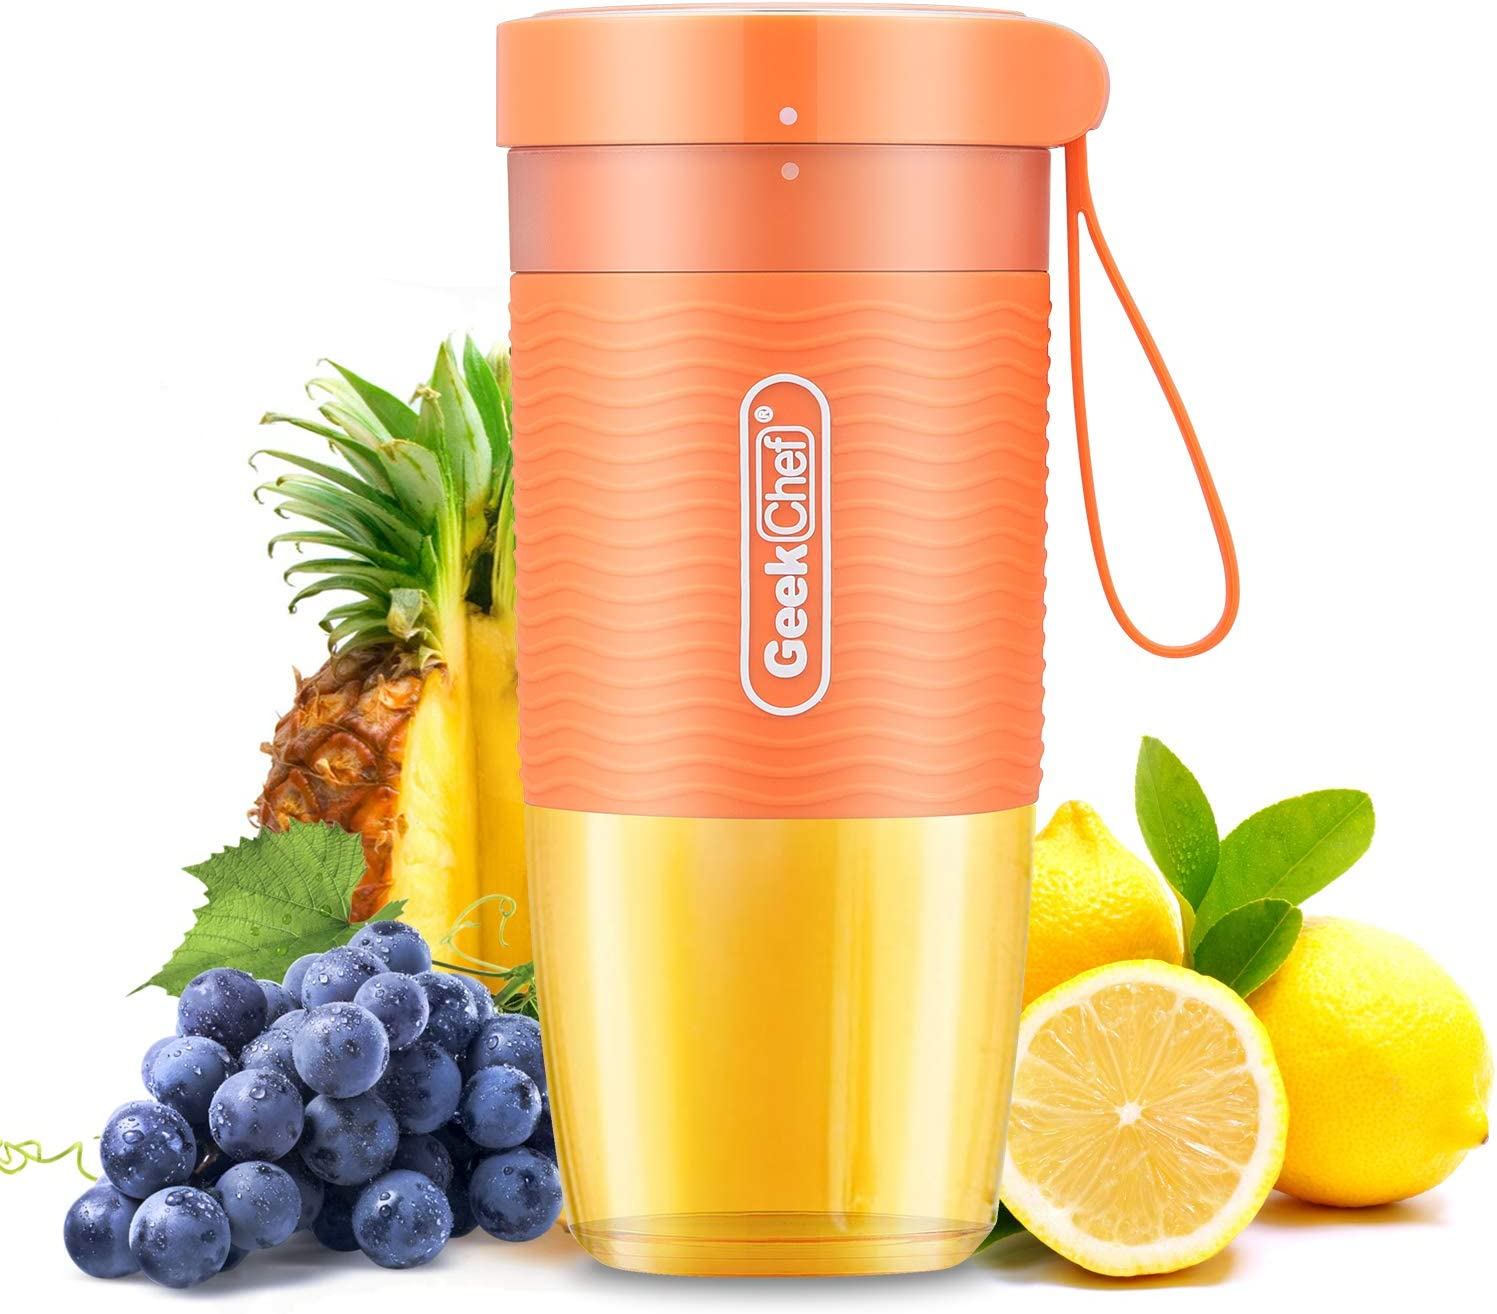 Amazon coupon code for Portable Blender Mini Personal